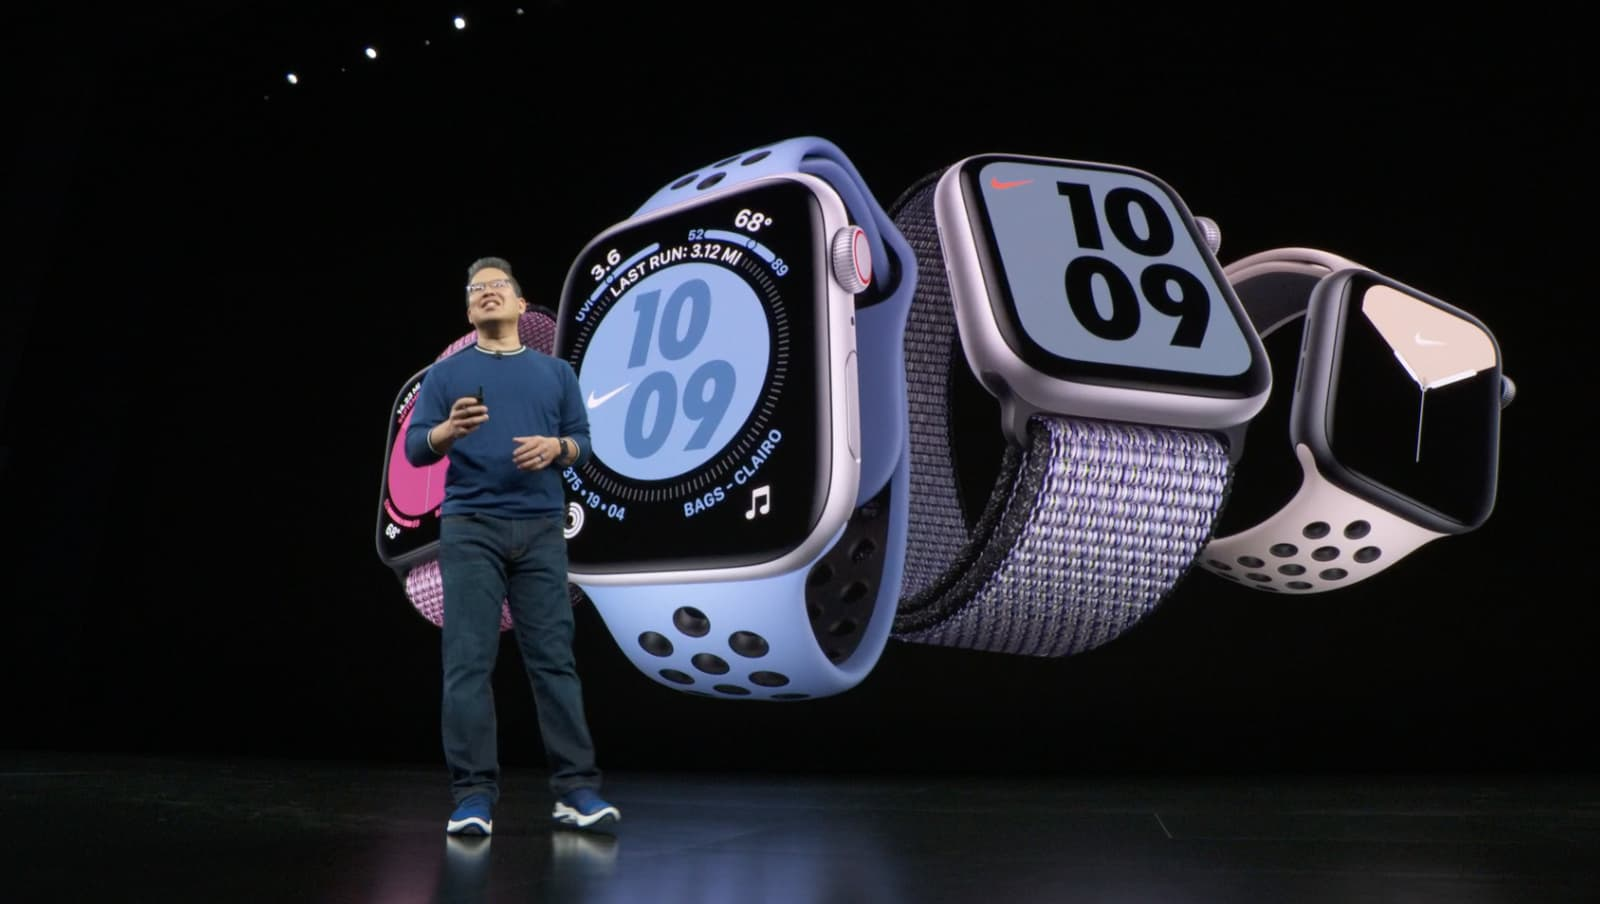 Analysts are blown away by Apple's wearables business — It's growing at an astounding 50% clip